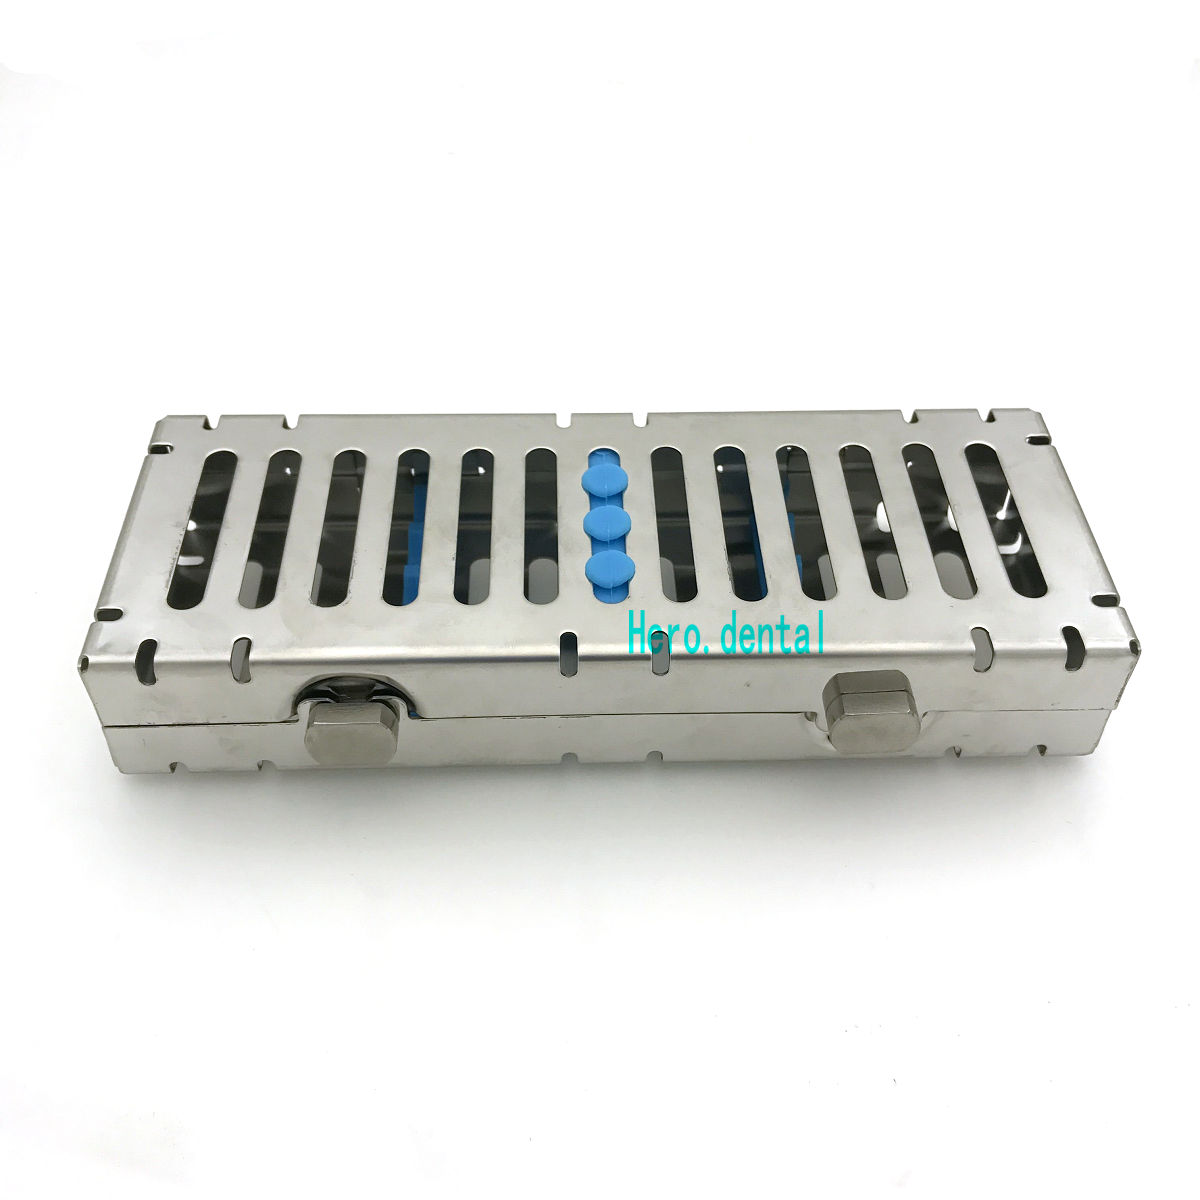 Dental Sterilization Cassette Rack Tray Box for Surgical Instruments new dental implant bur drill tool sterilization cassette kit organizer box tray